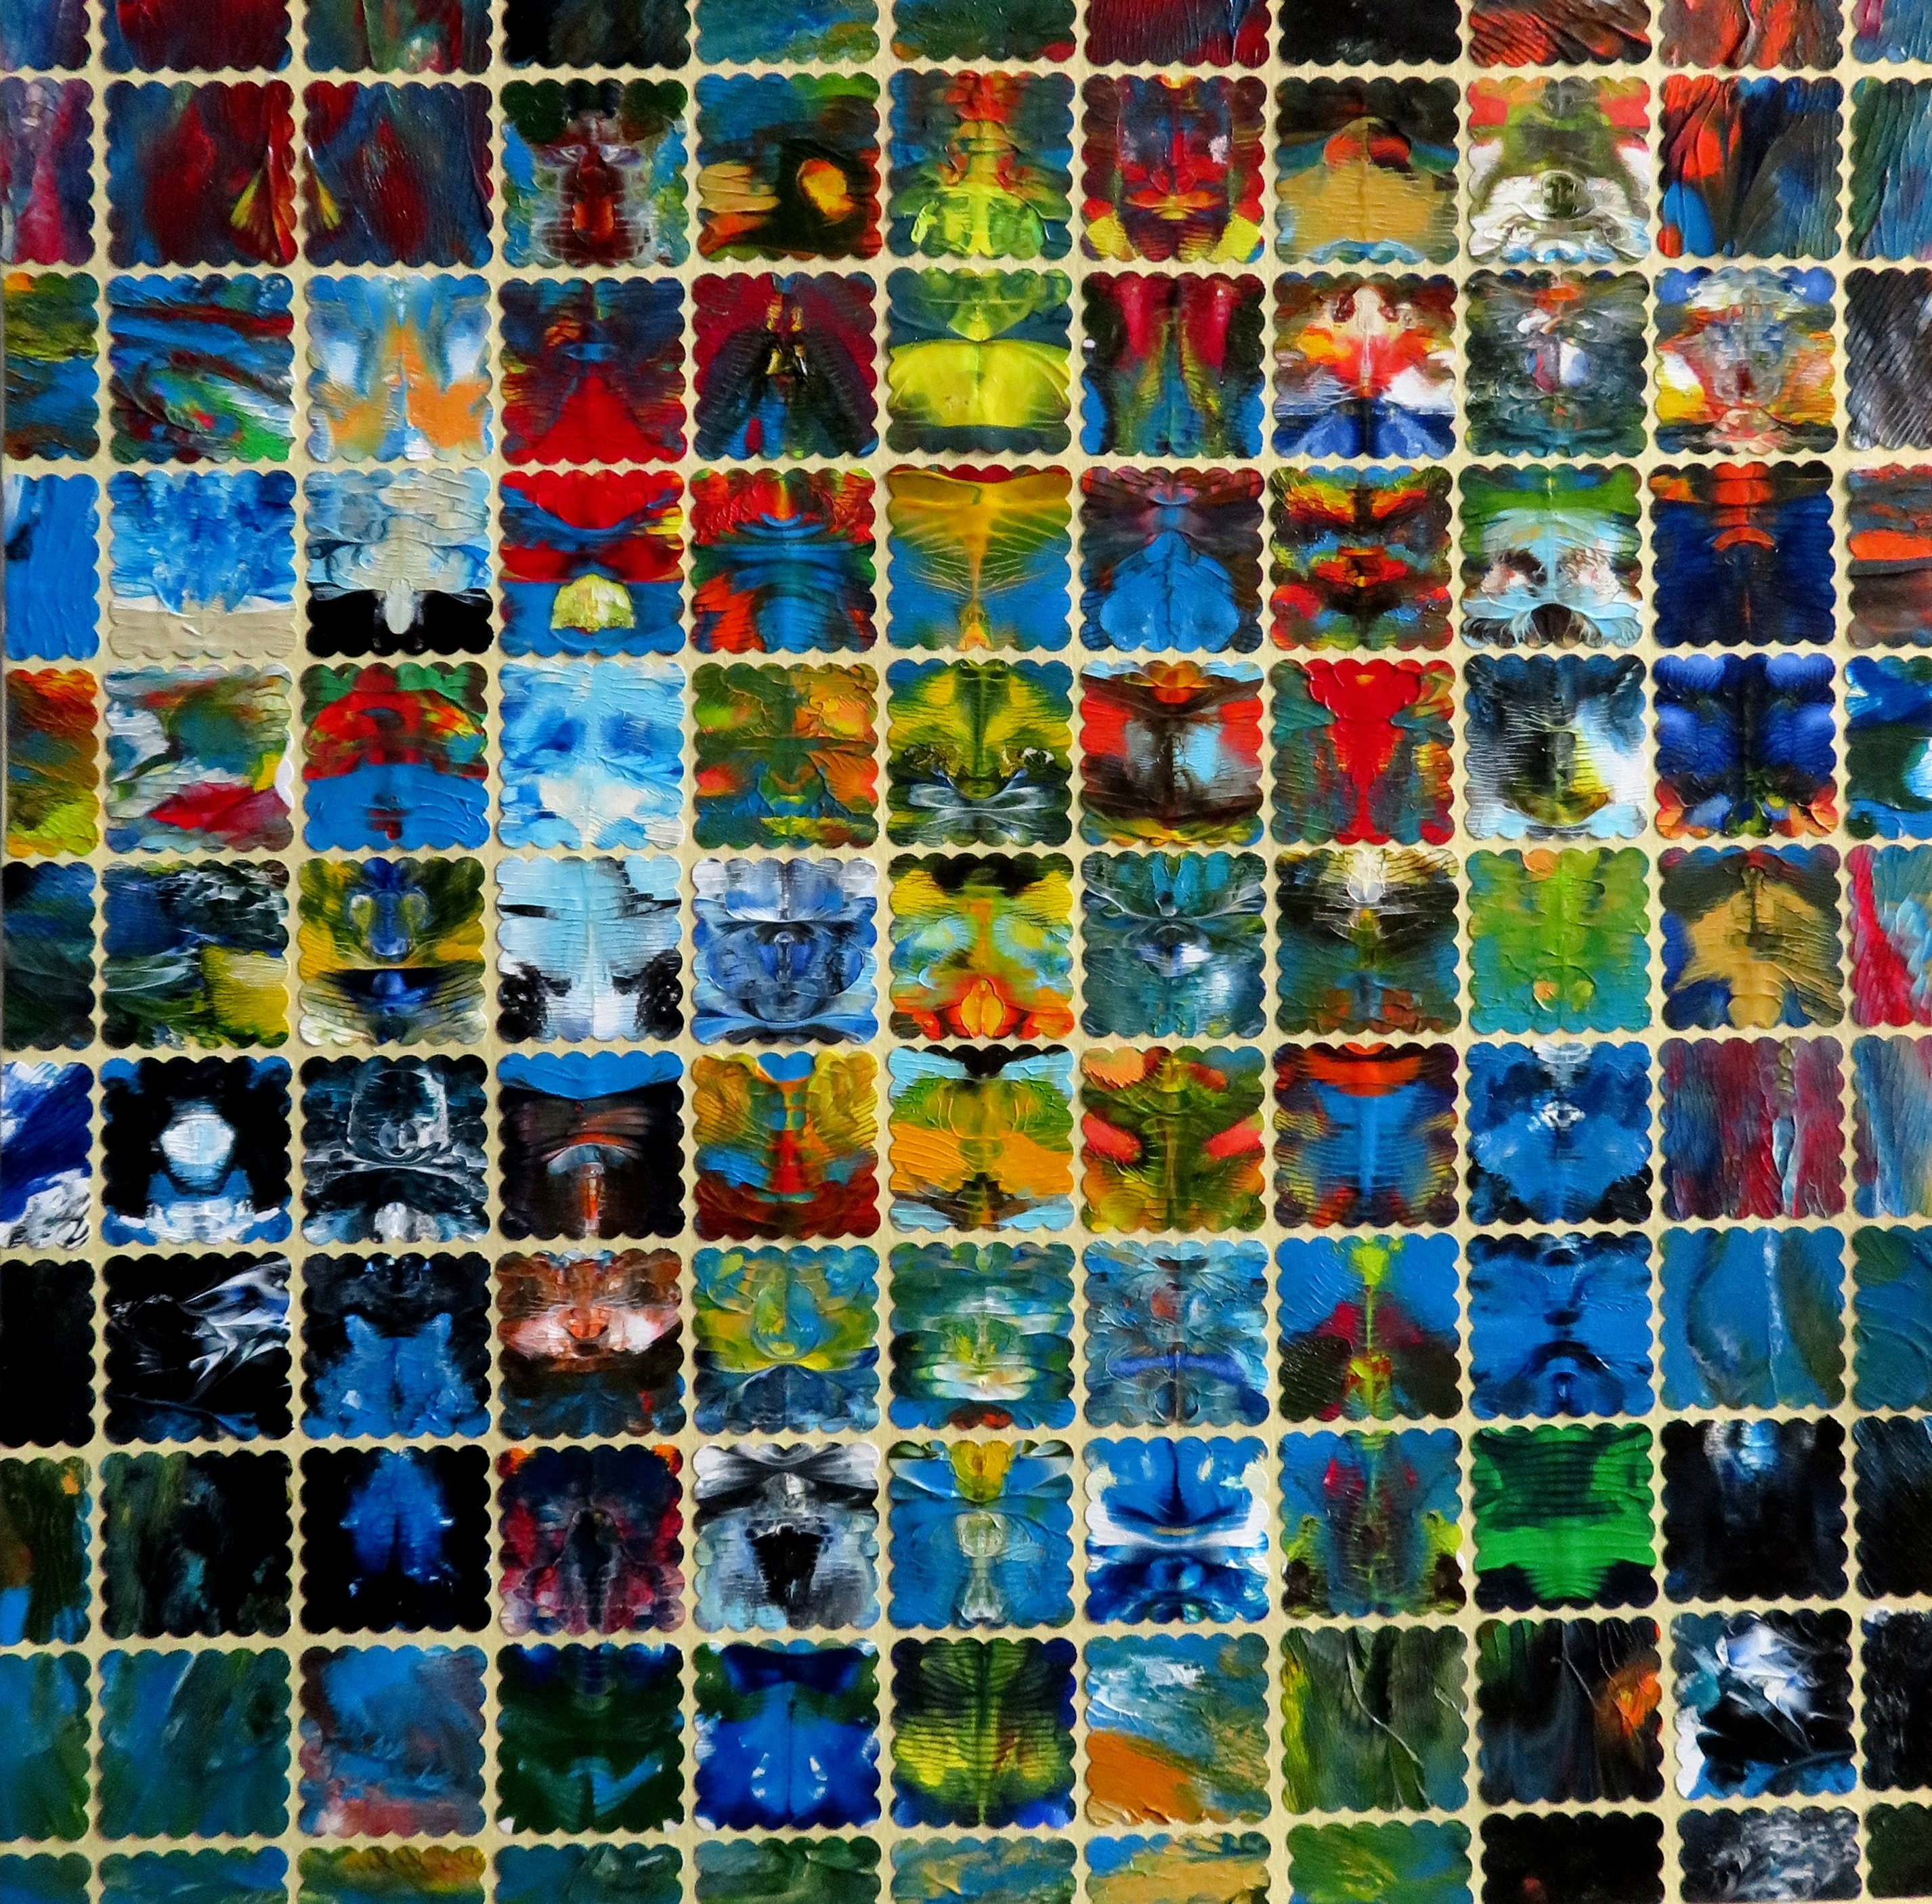 Mosaik III (30x30)Art in Art